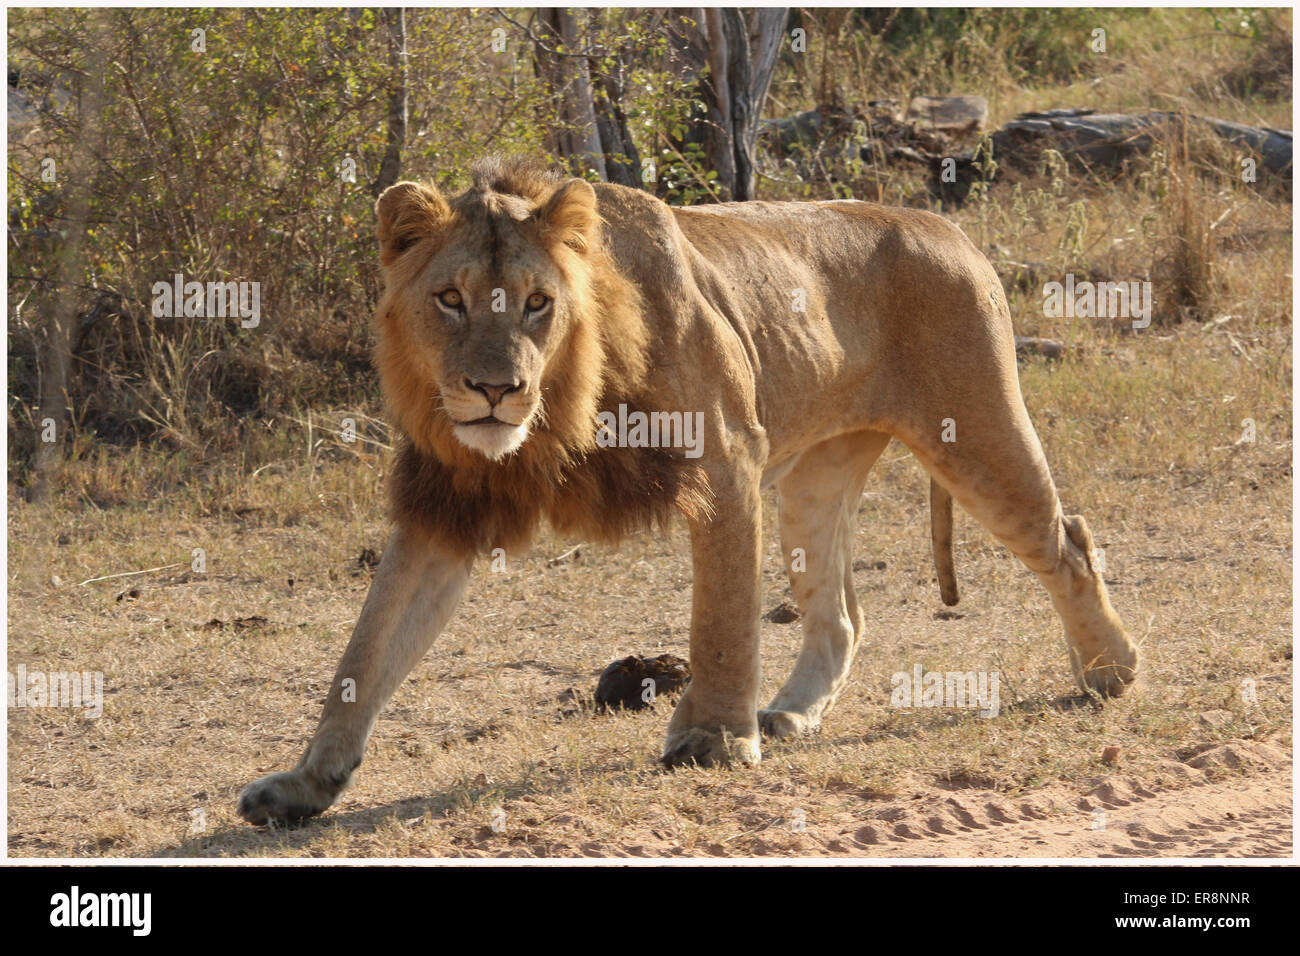 Male Lion on the move - Stock Image